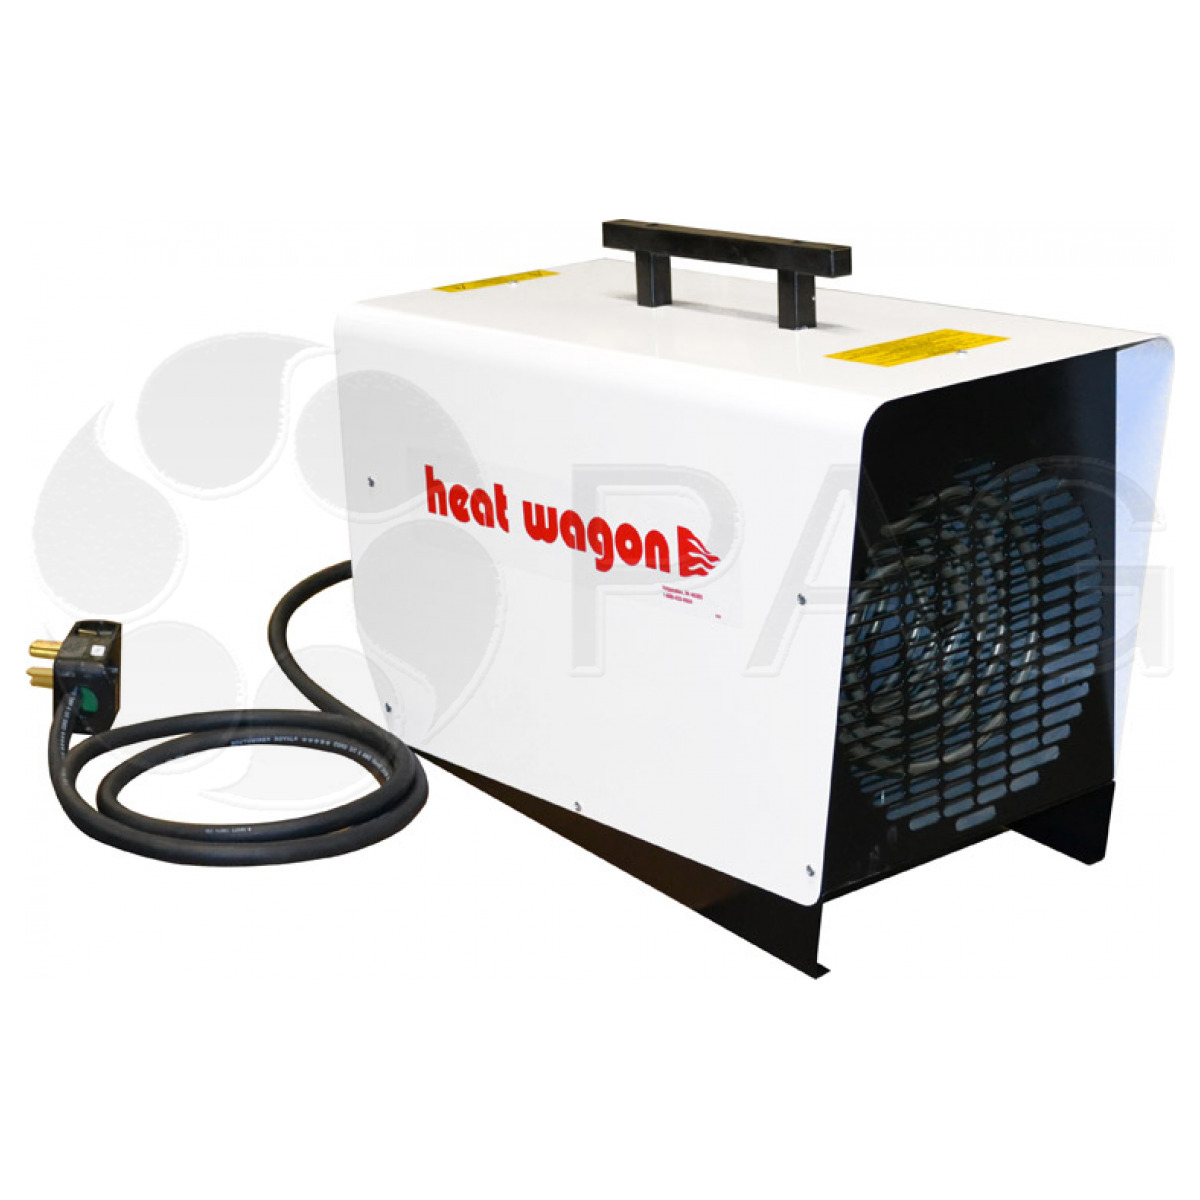 Heat Wagon P600 and P900 portable electric heater